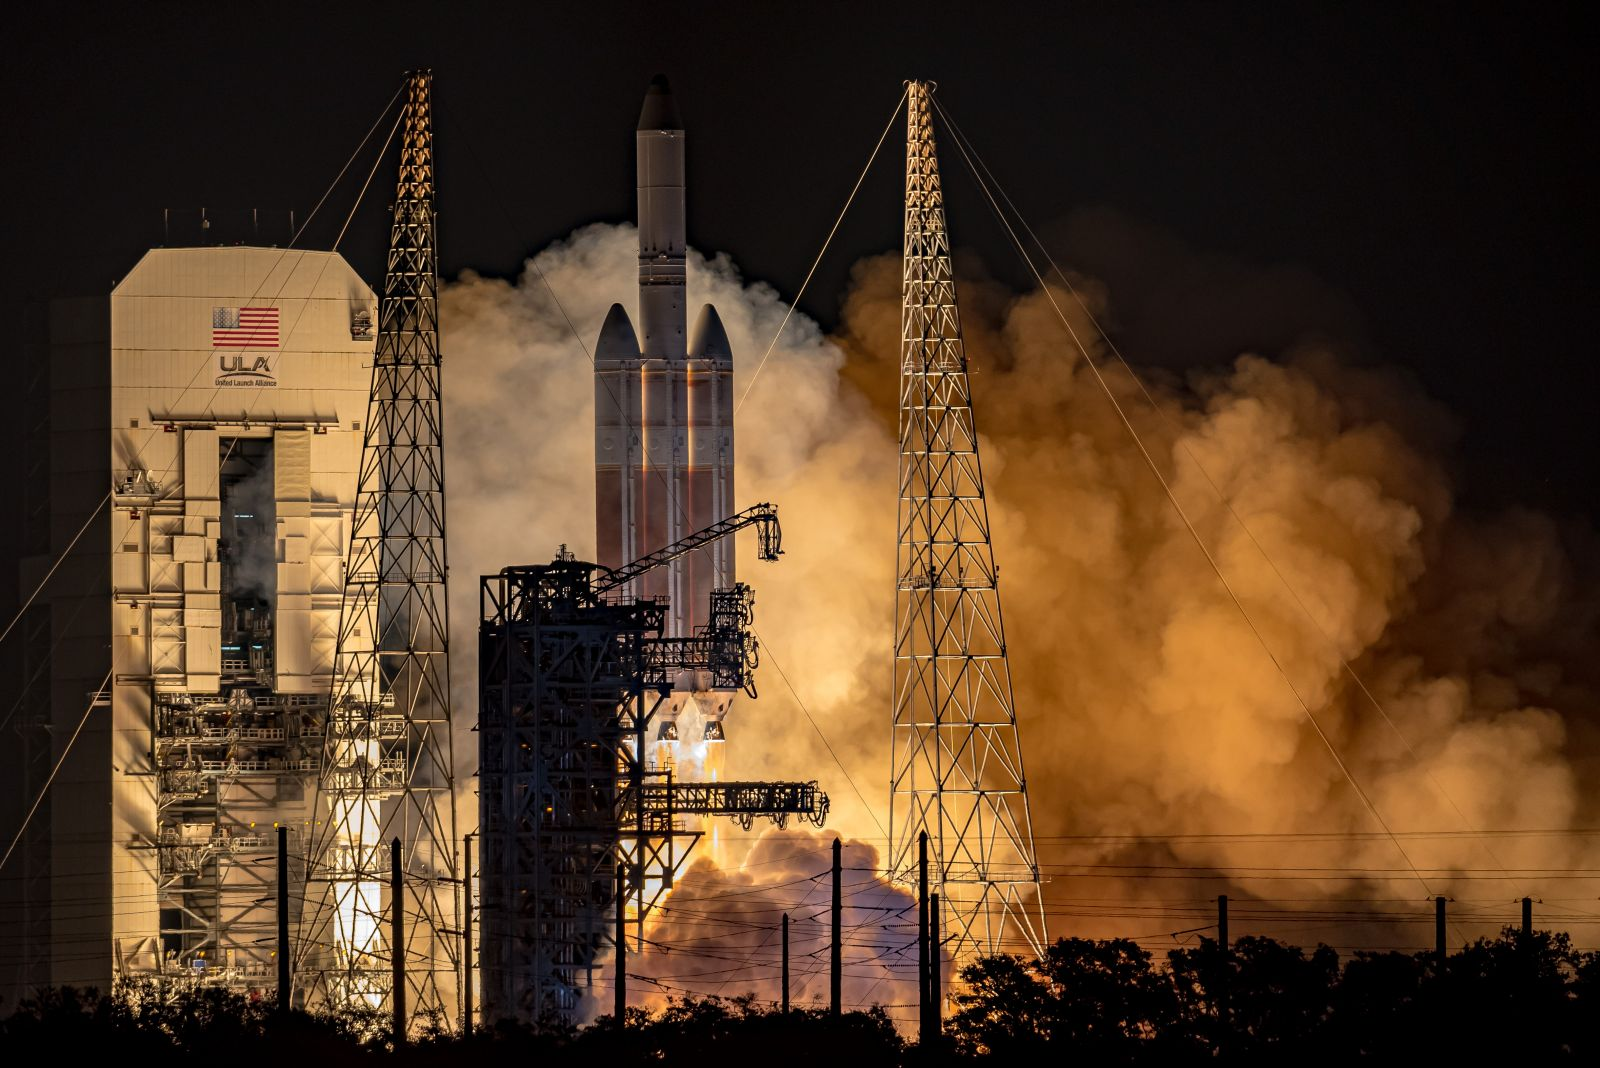 The ULA Delta IV Heavy carrying NROL-44 lifts off from Launch Complex 37 in Florida, Dec 10, 2020. The rocket carried a classified NRO satellite into orbit. Credit: Matt Haskell / Spaceflight Insider